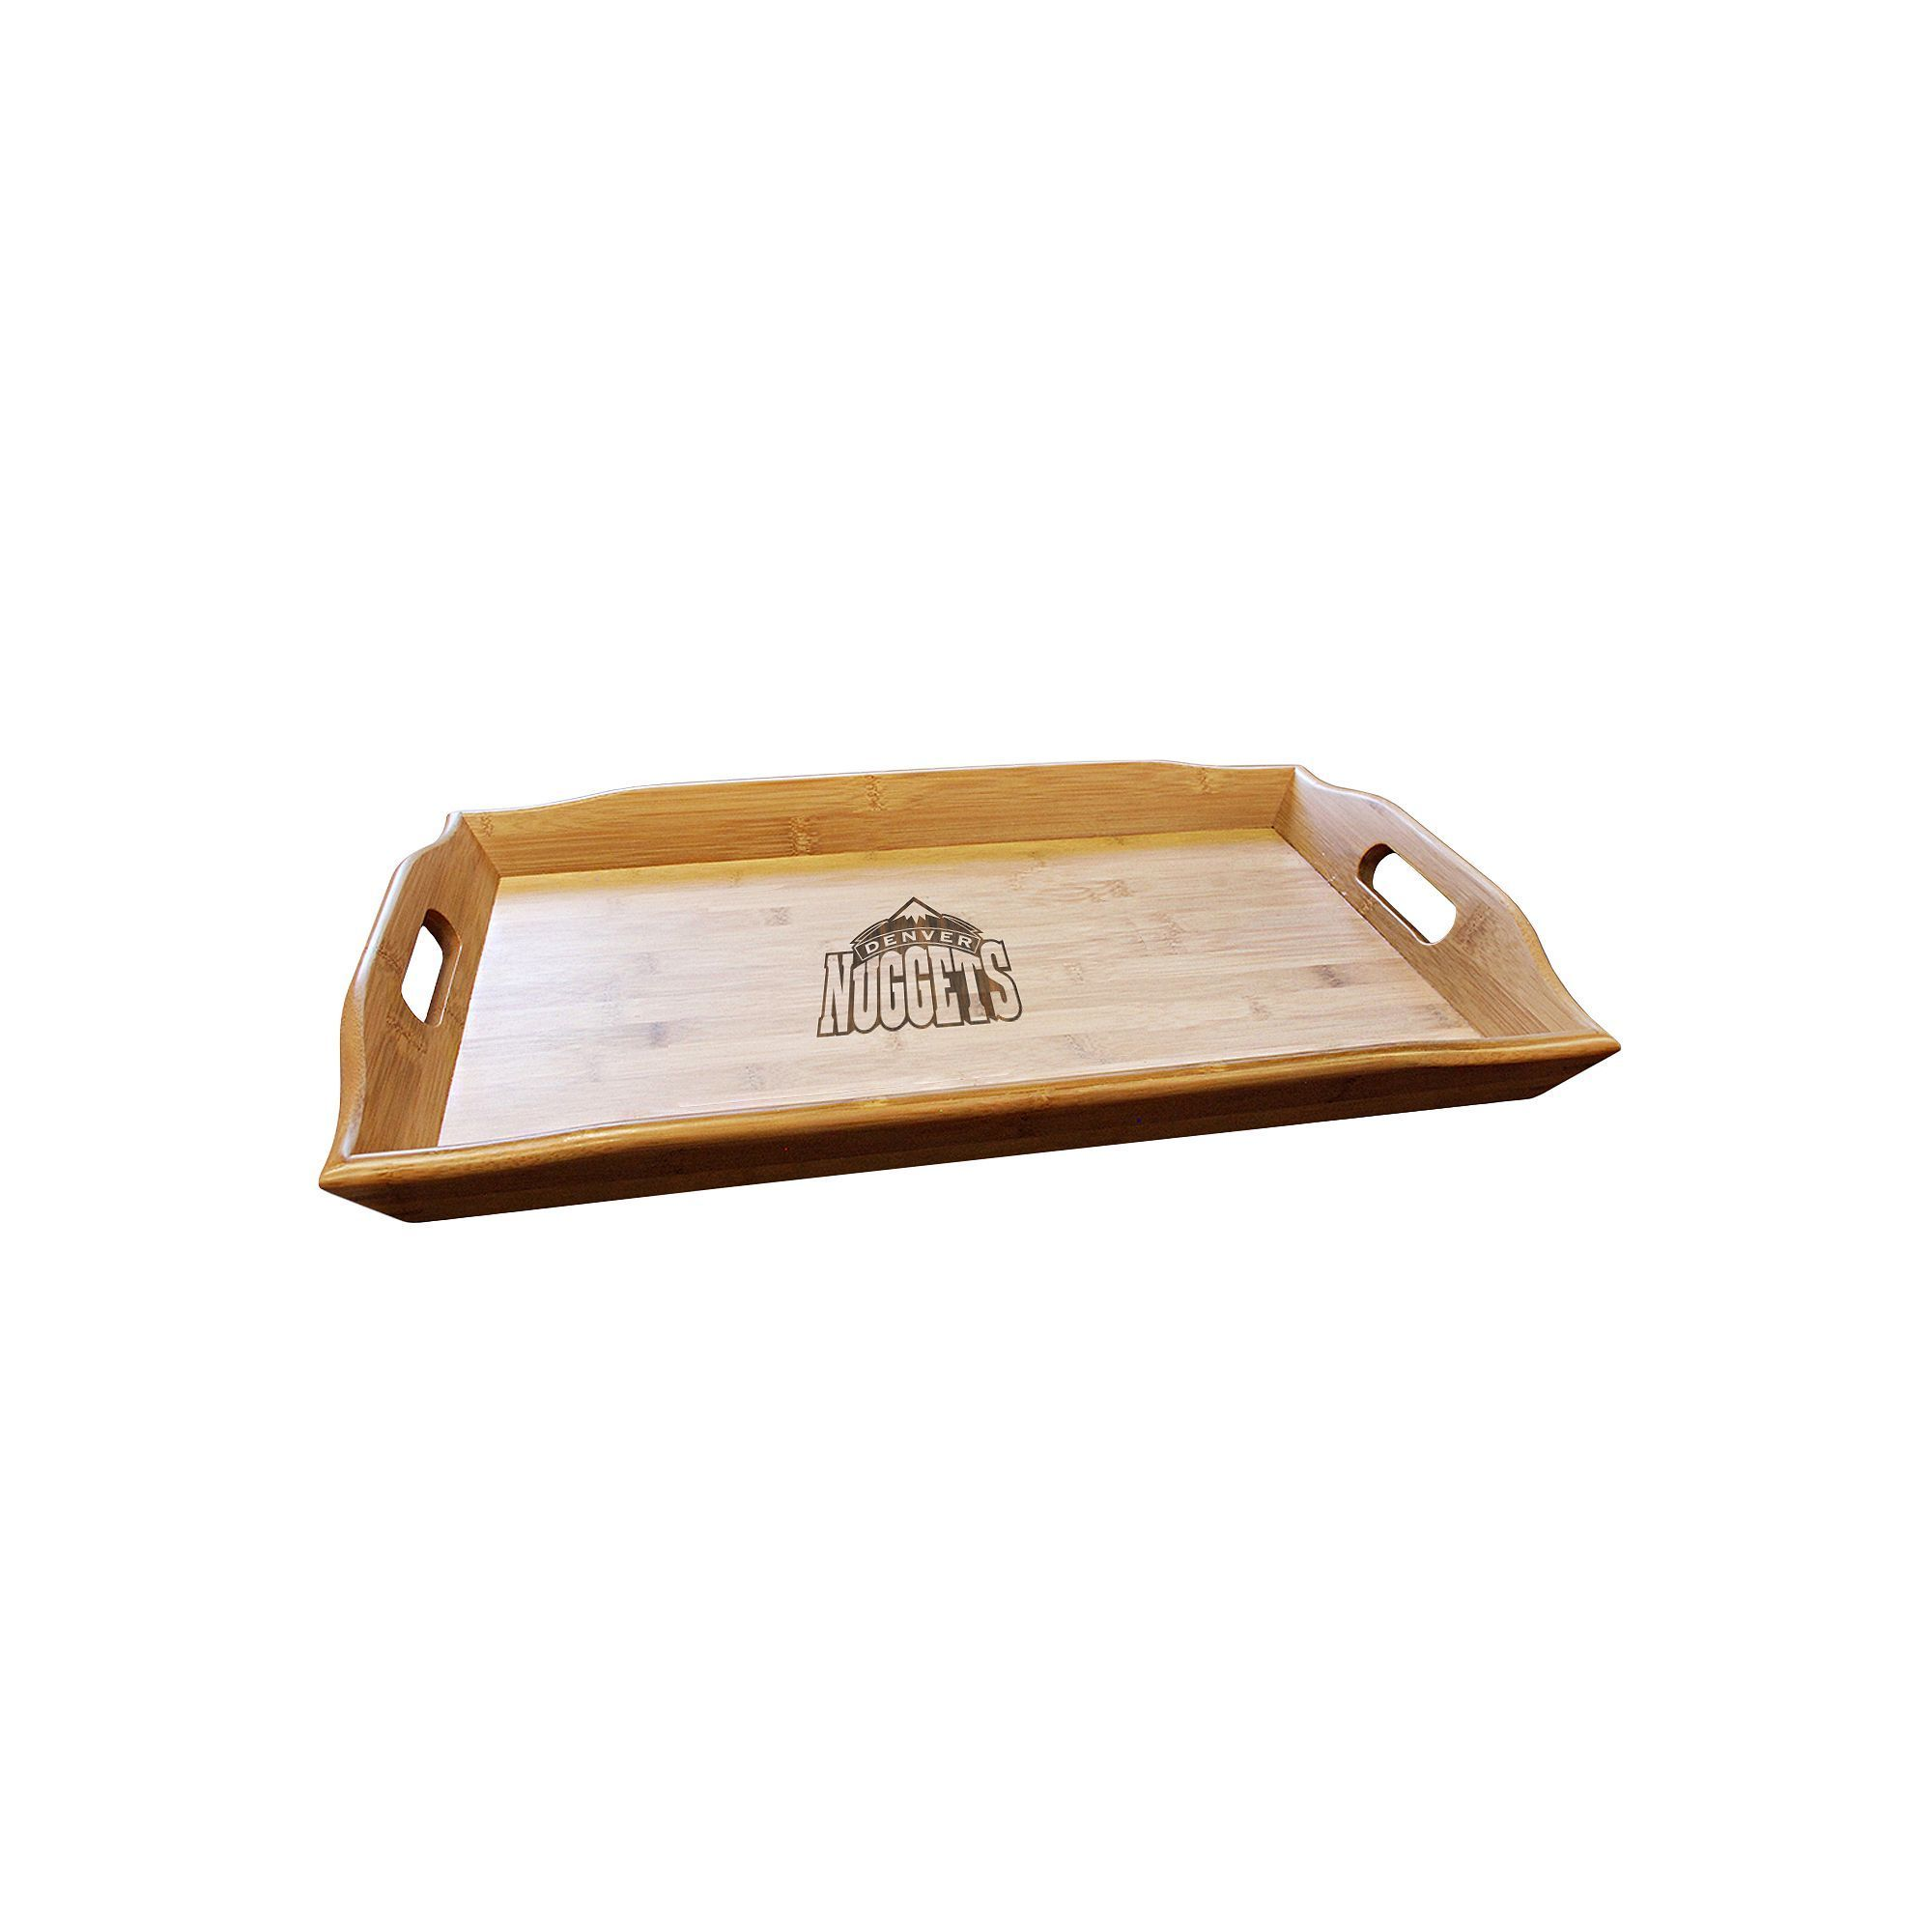 Denver Nuggets Bamboo Serving Tray, Brown